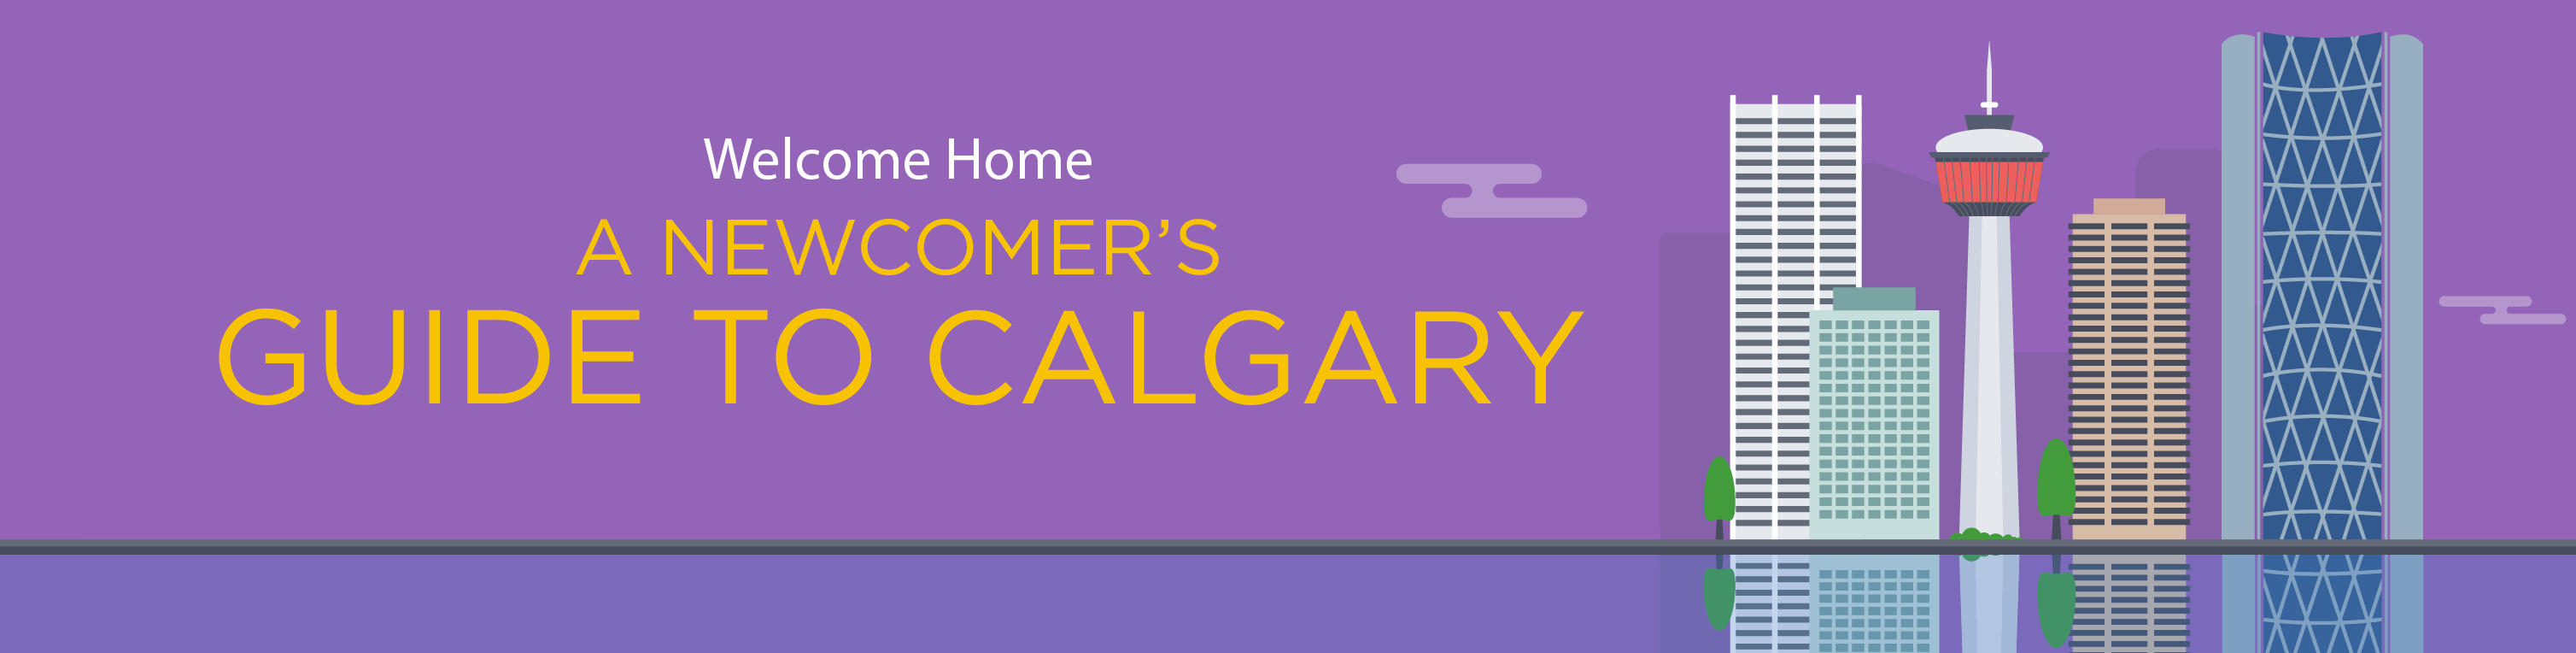 Trico Homes - A Newcomer's Guide to Calgary